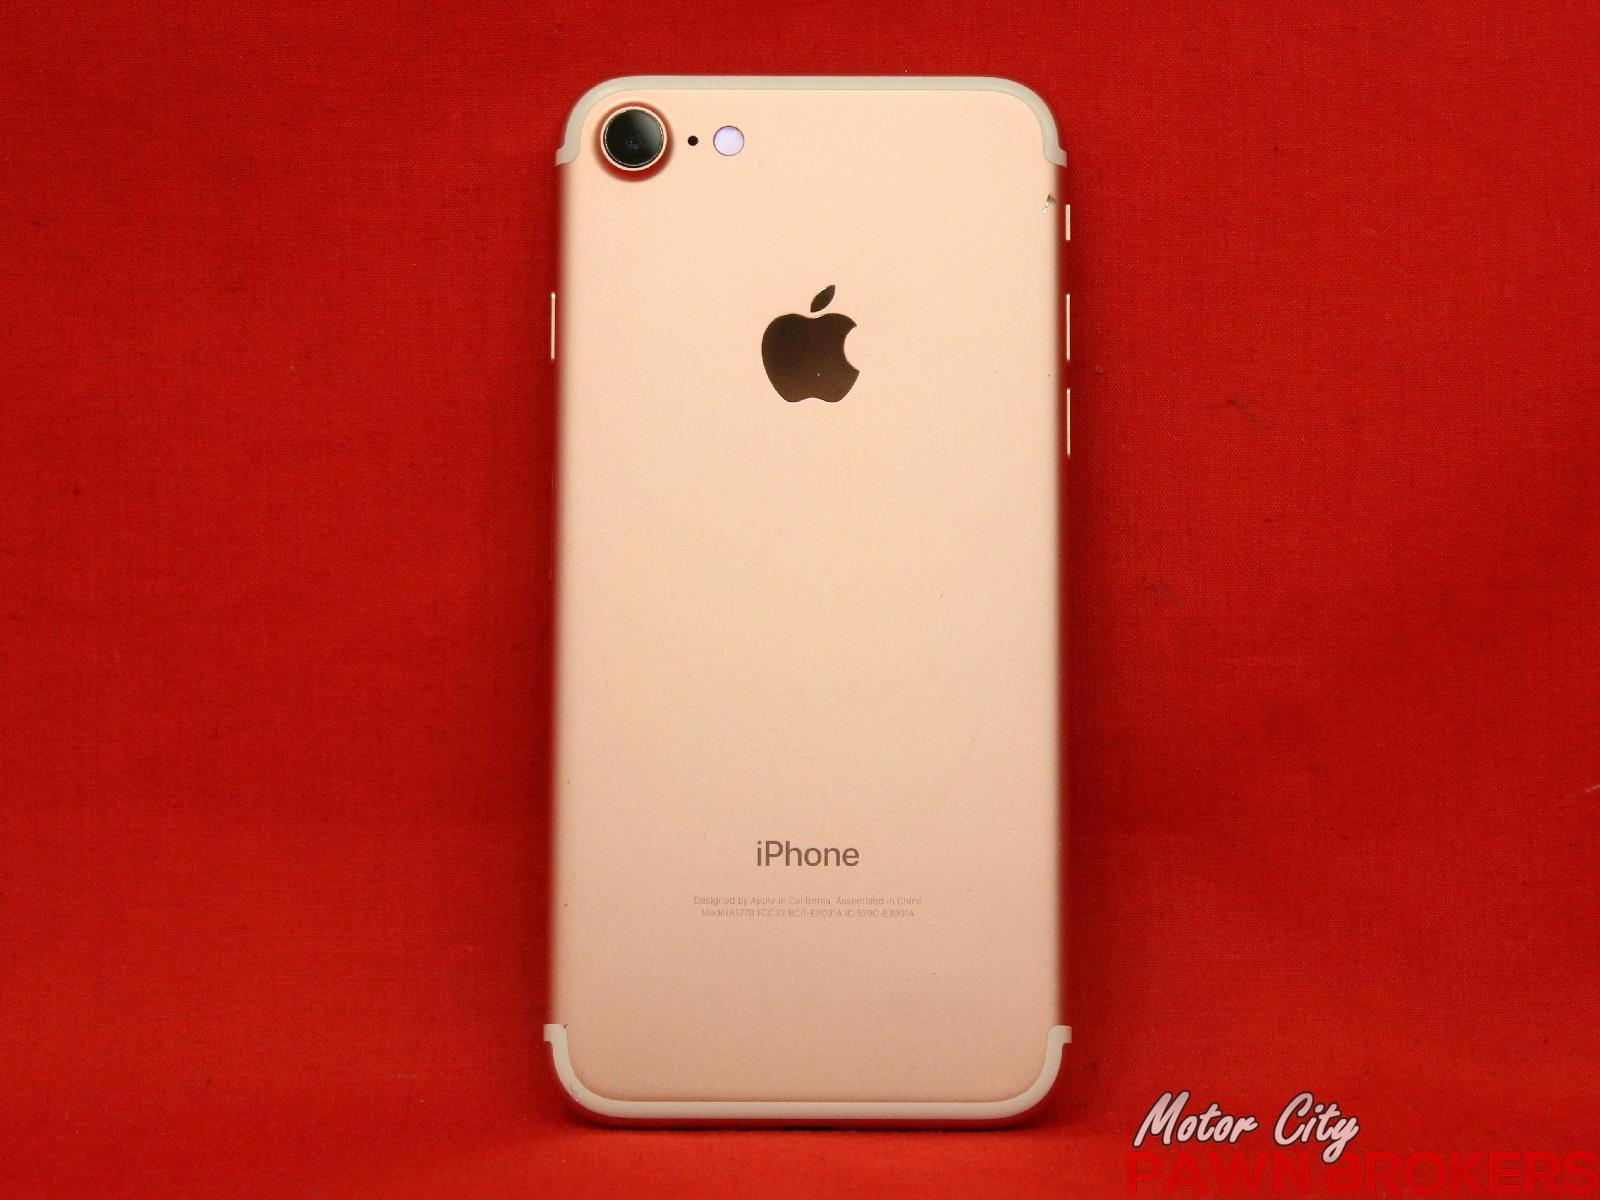 apple iphone 7s mna42ll a 128gb t mobile bad imei